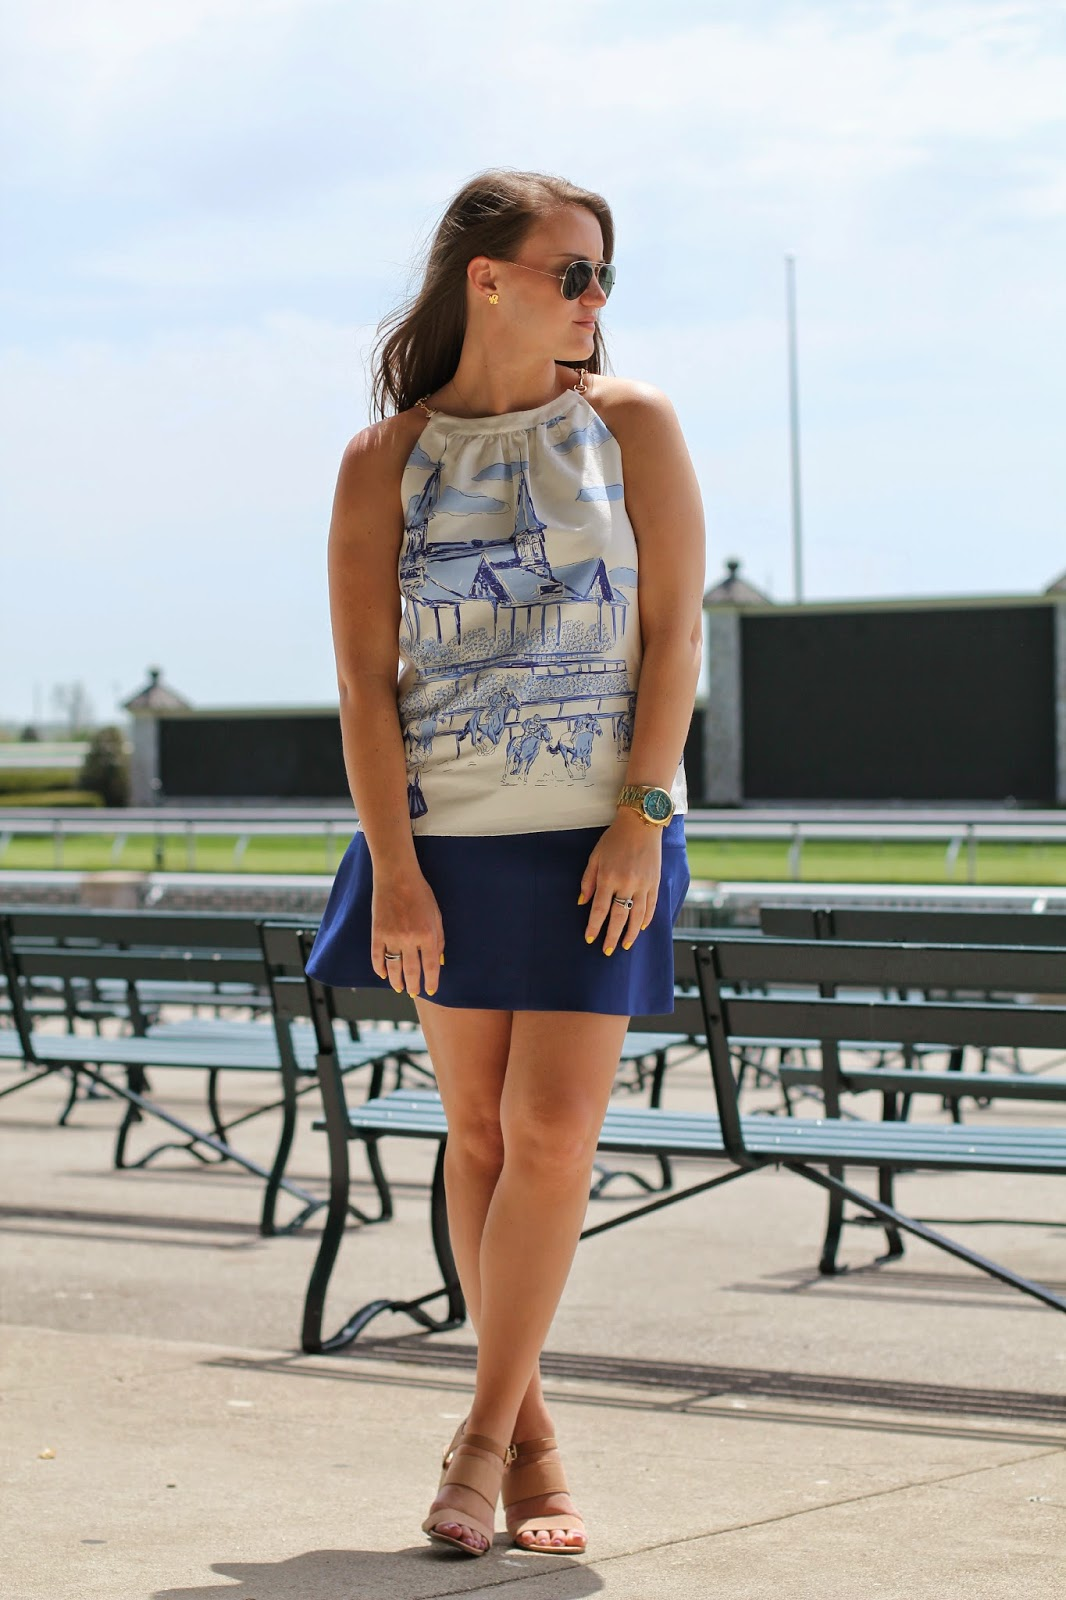 krista robertson, southern shopaholic, new york fashion blogger, kentucky fashion blogger